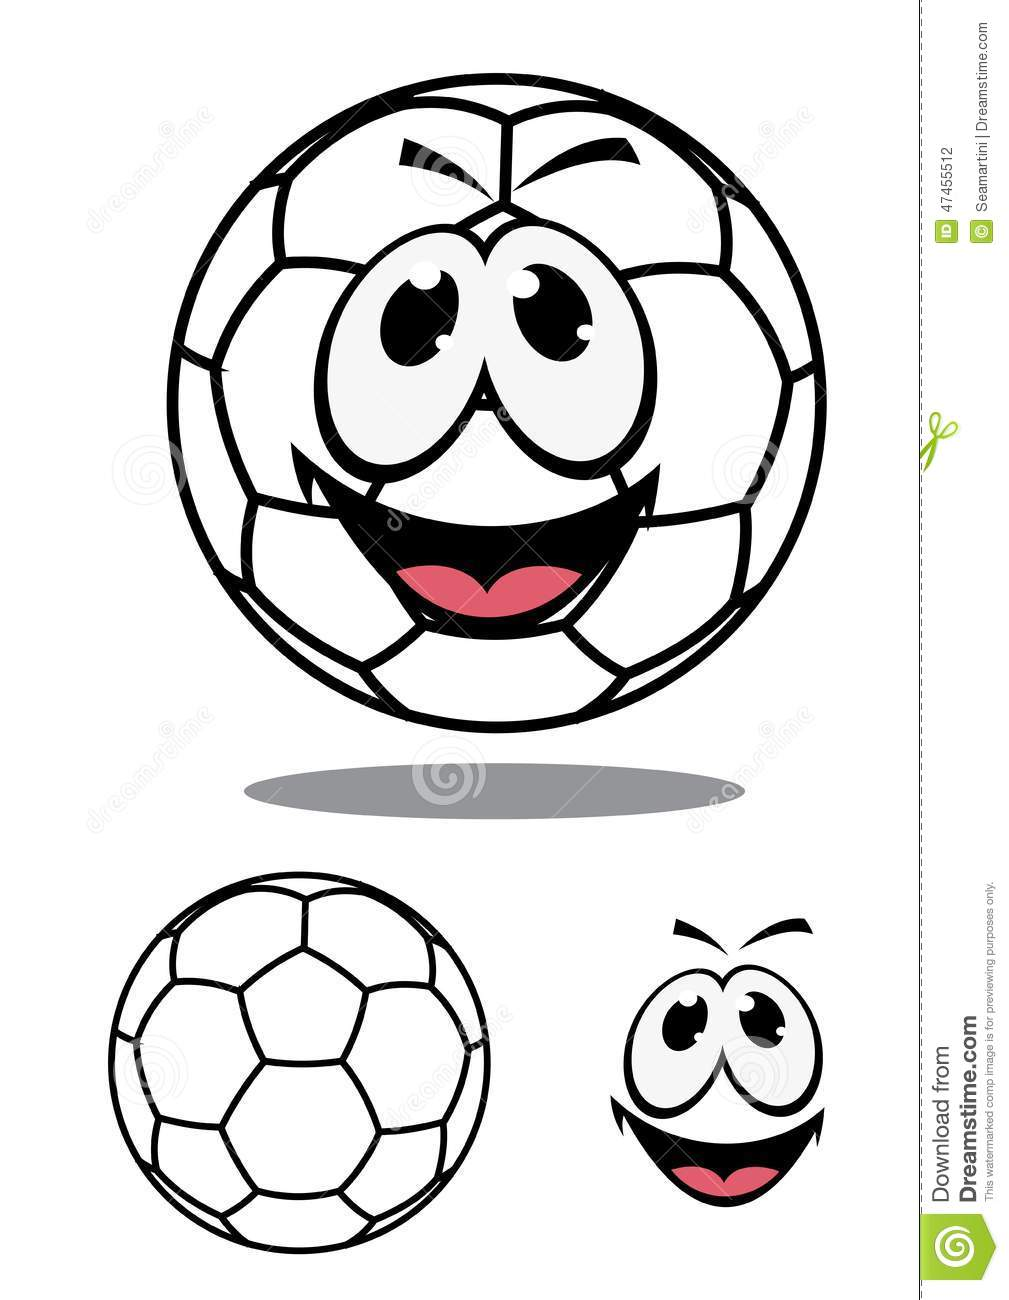 Happy Soccer Or Football Ball Character Stock Vector